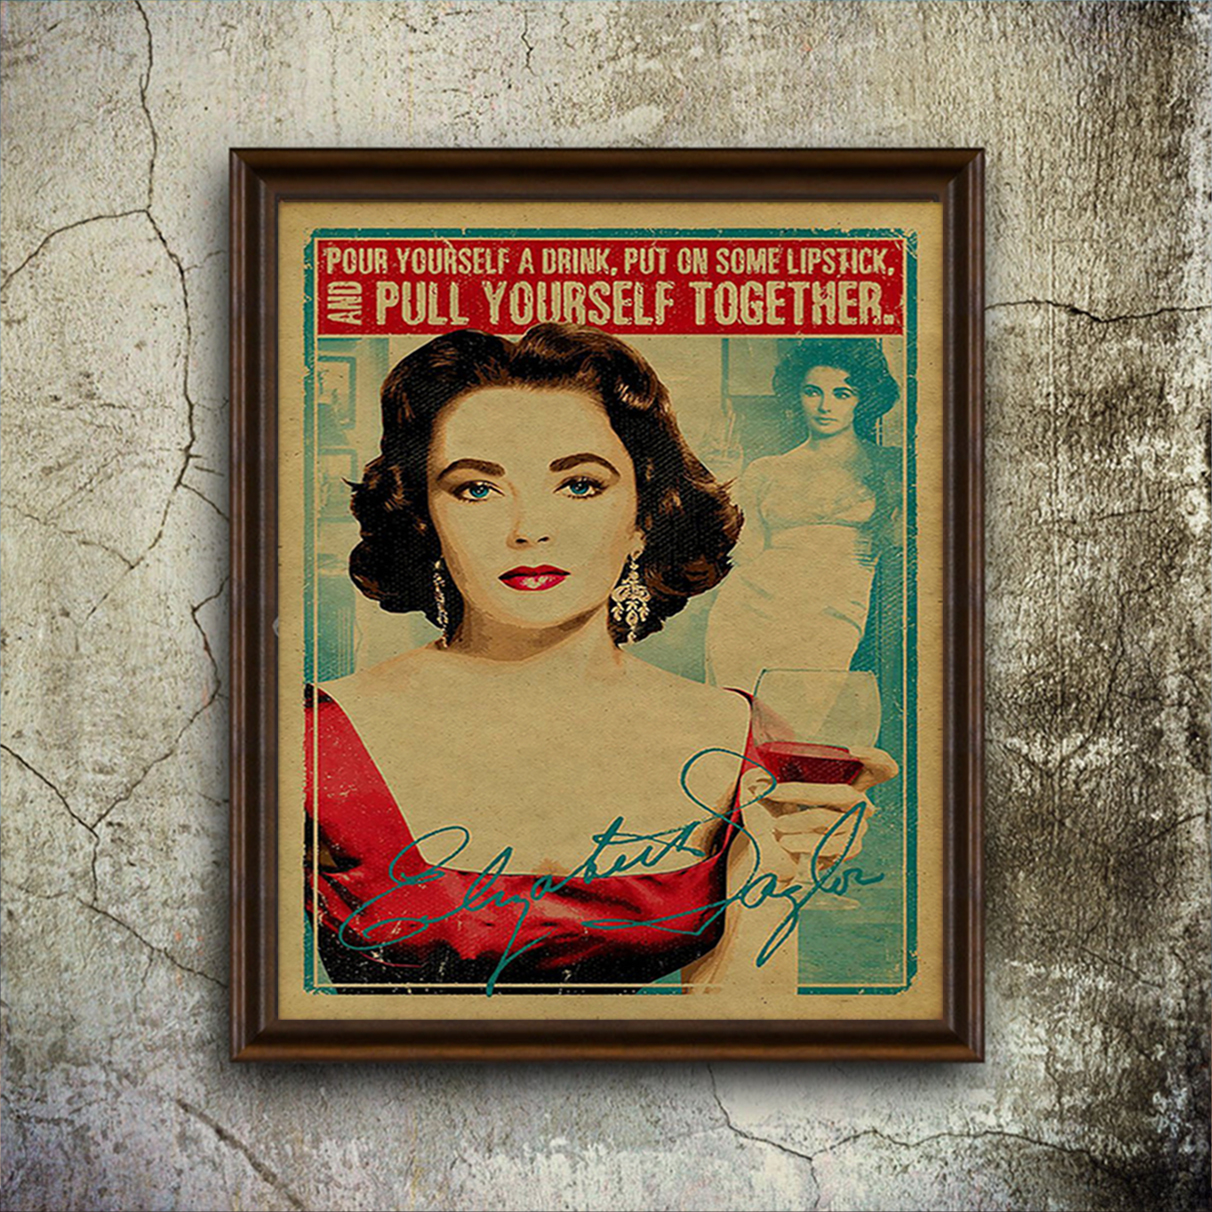 Elizabeth taylor pour yourself a drink put on some lipstick poster A1